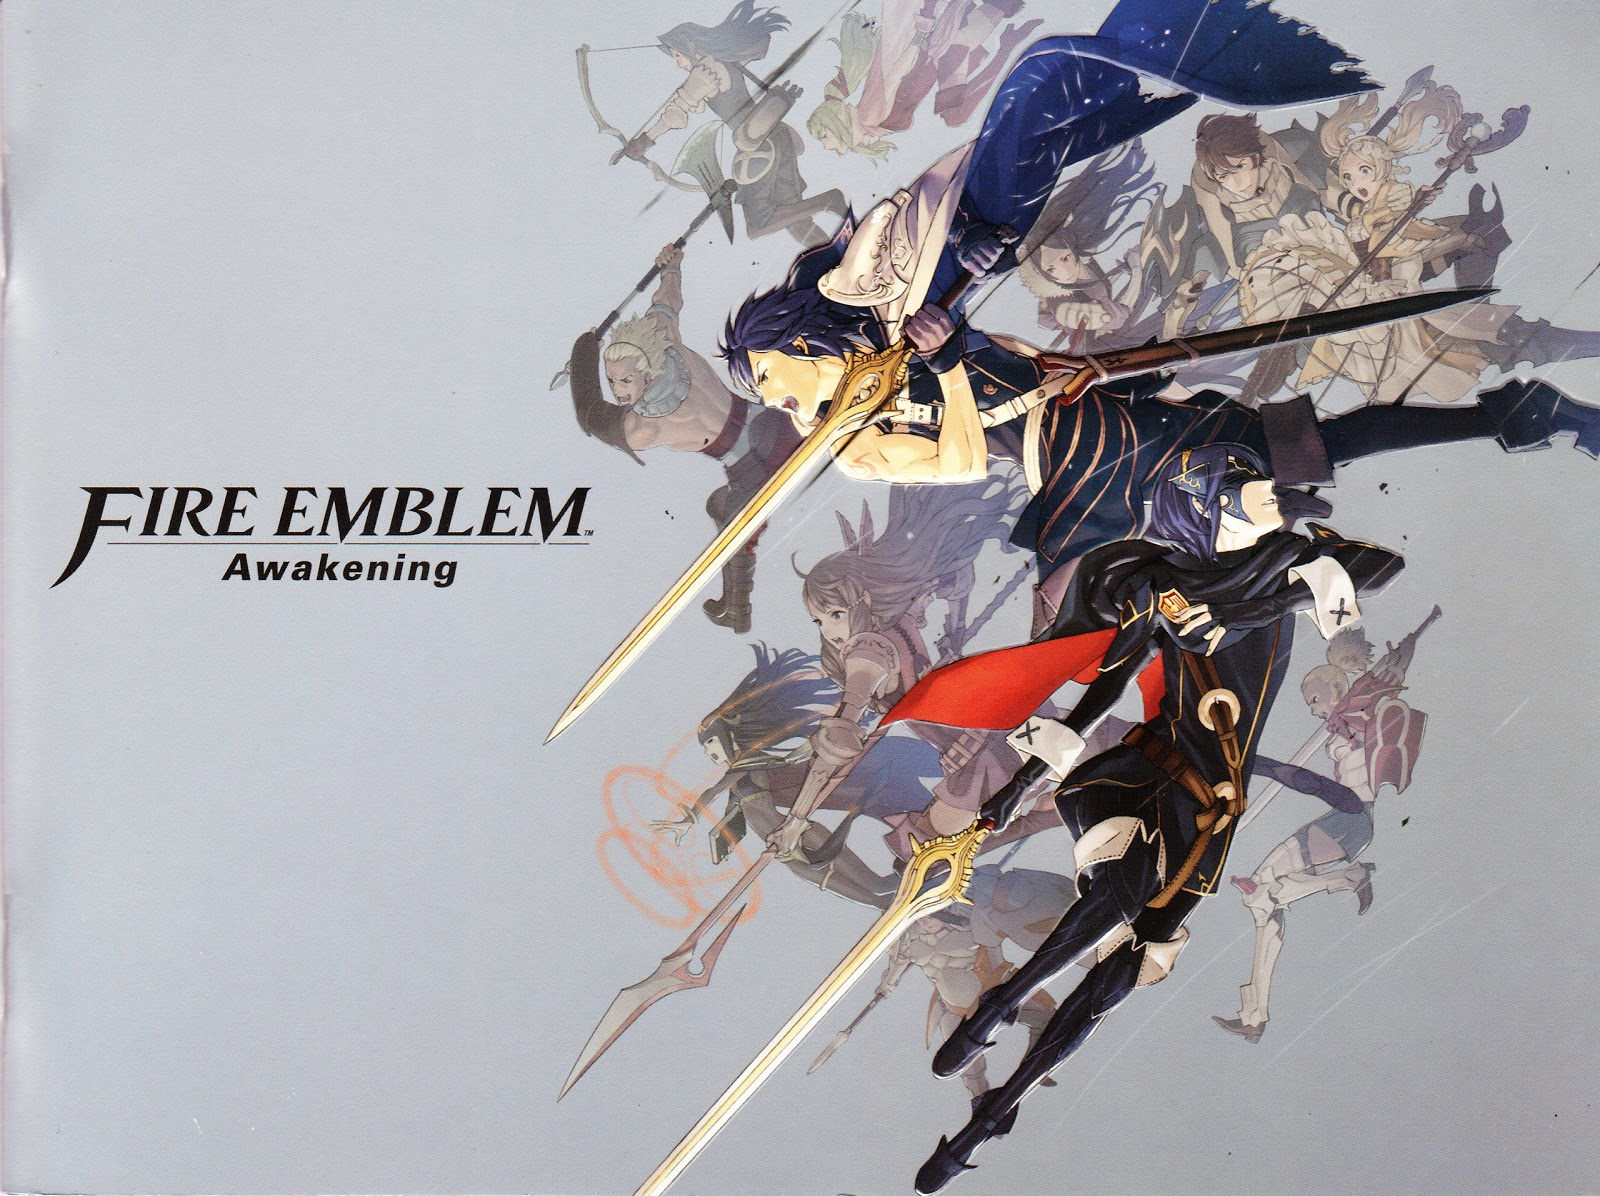 Fire emblem awakening intolerable